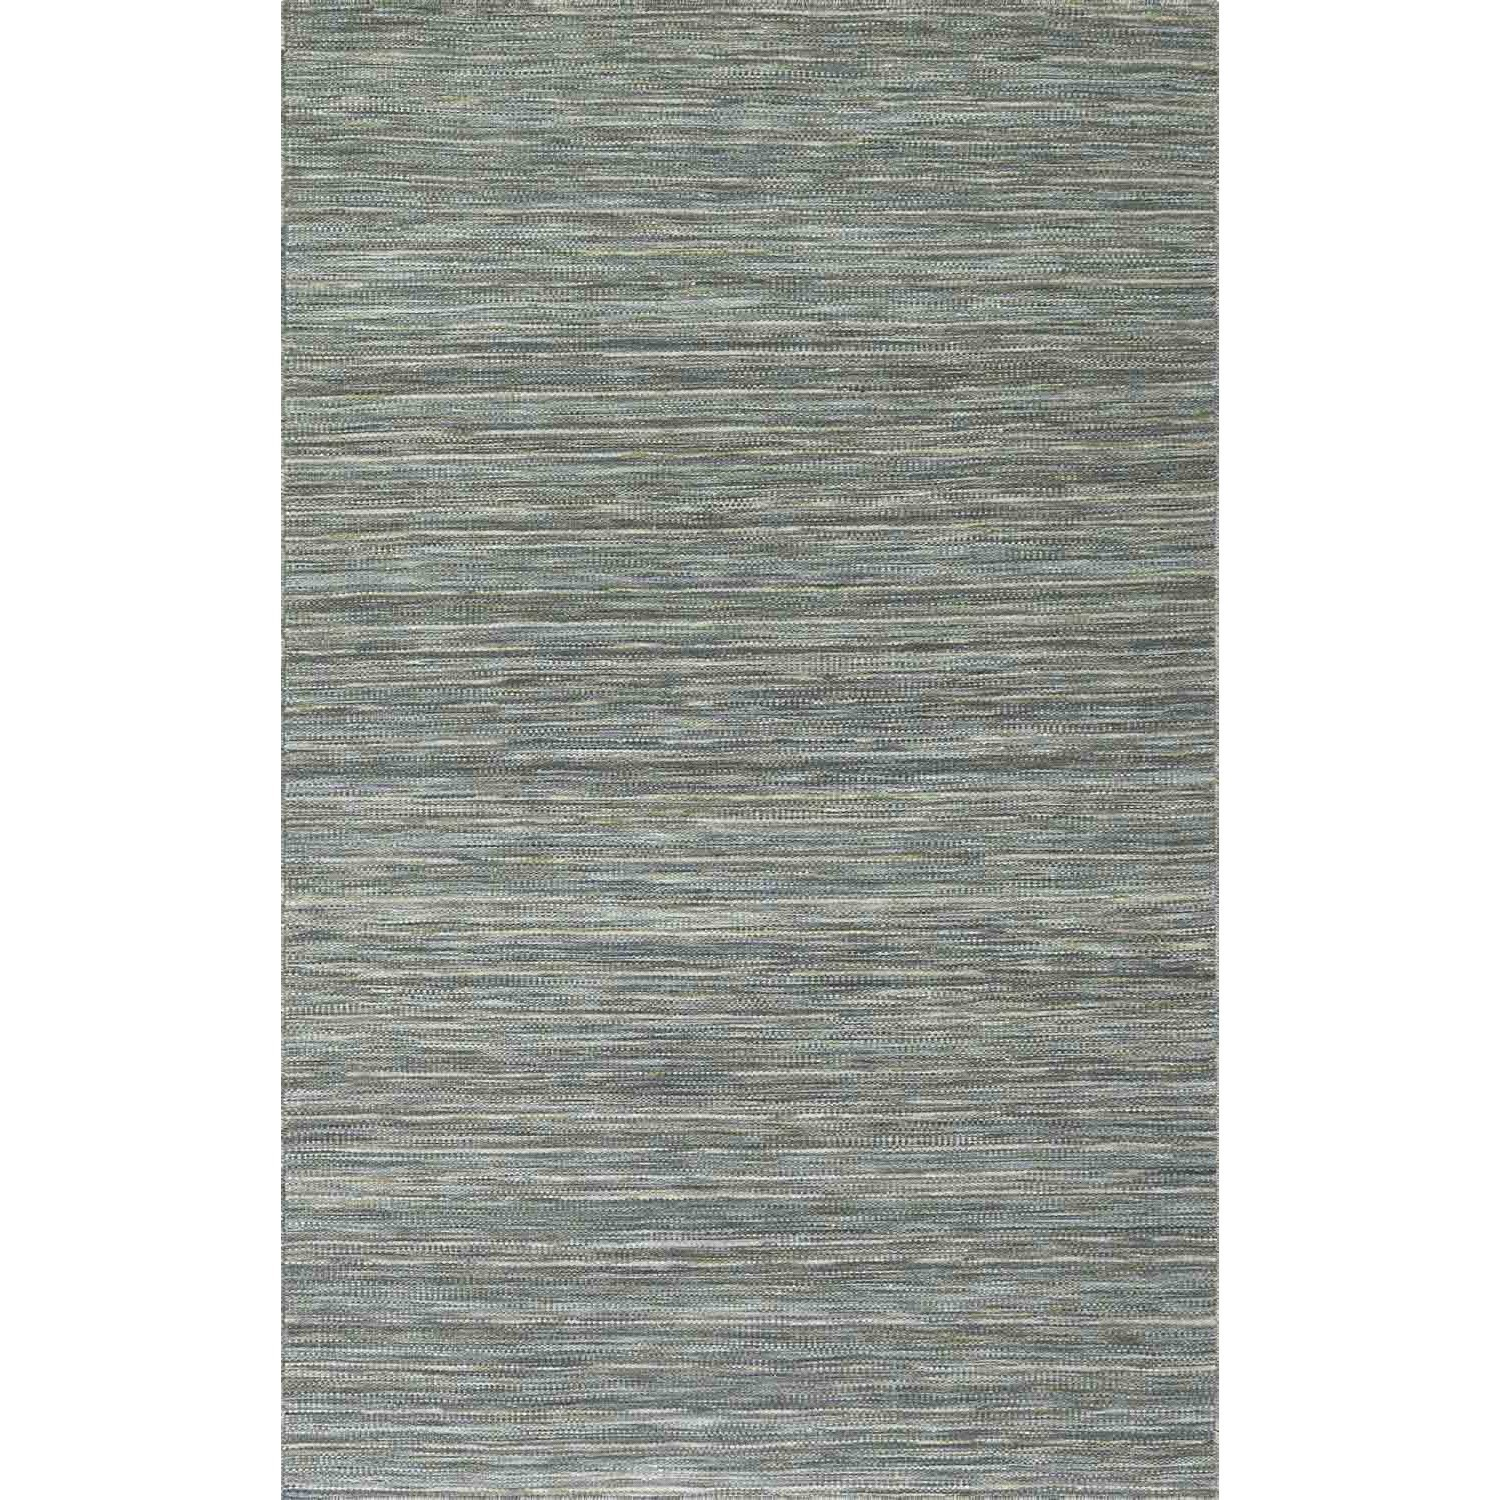 Targon Carbon 8 x 10 Rug by Dalyn at Darvin Furniture